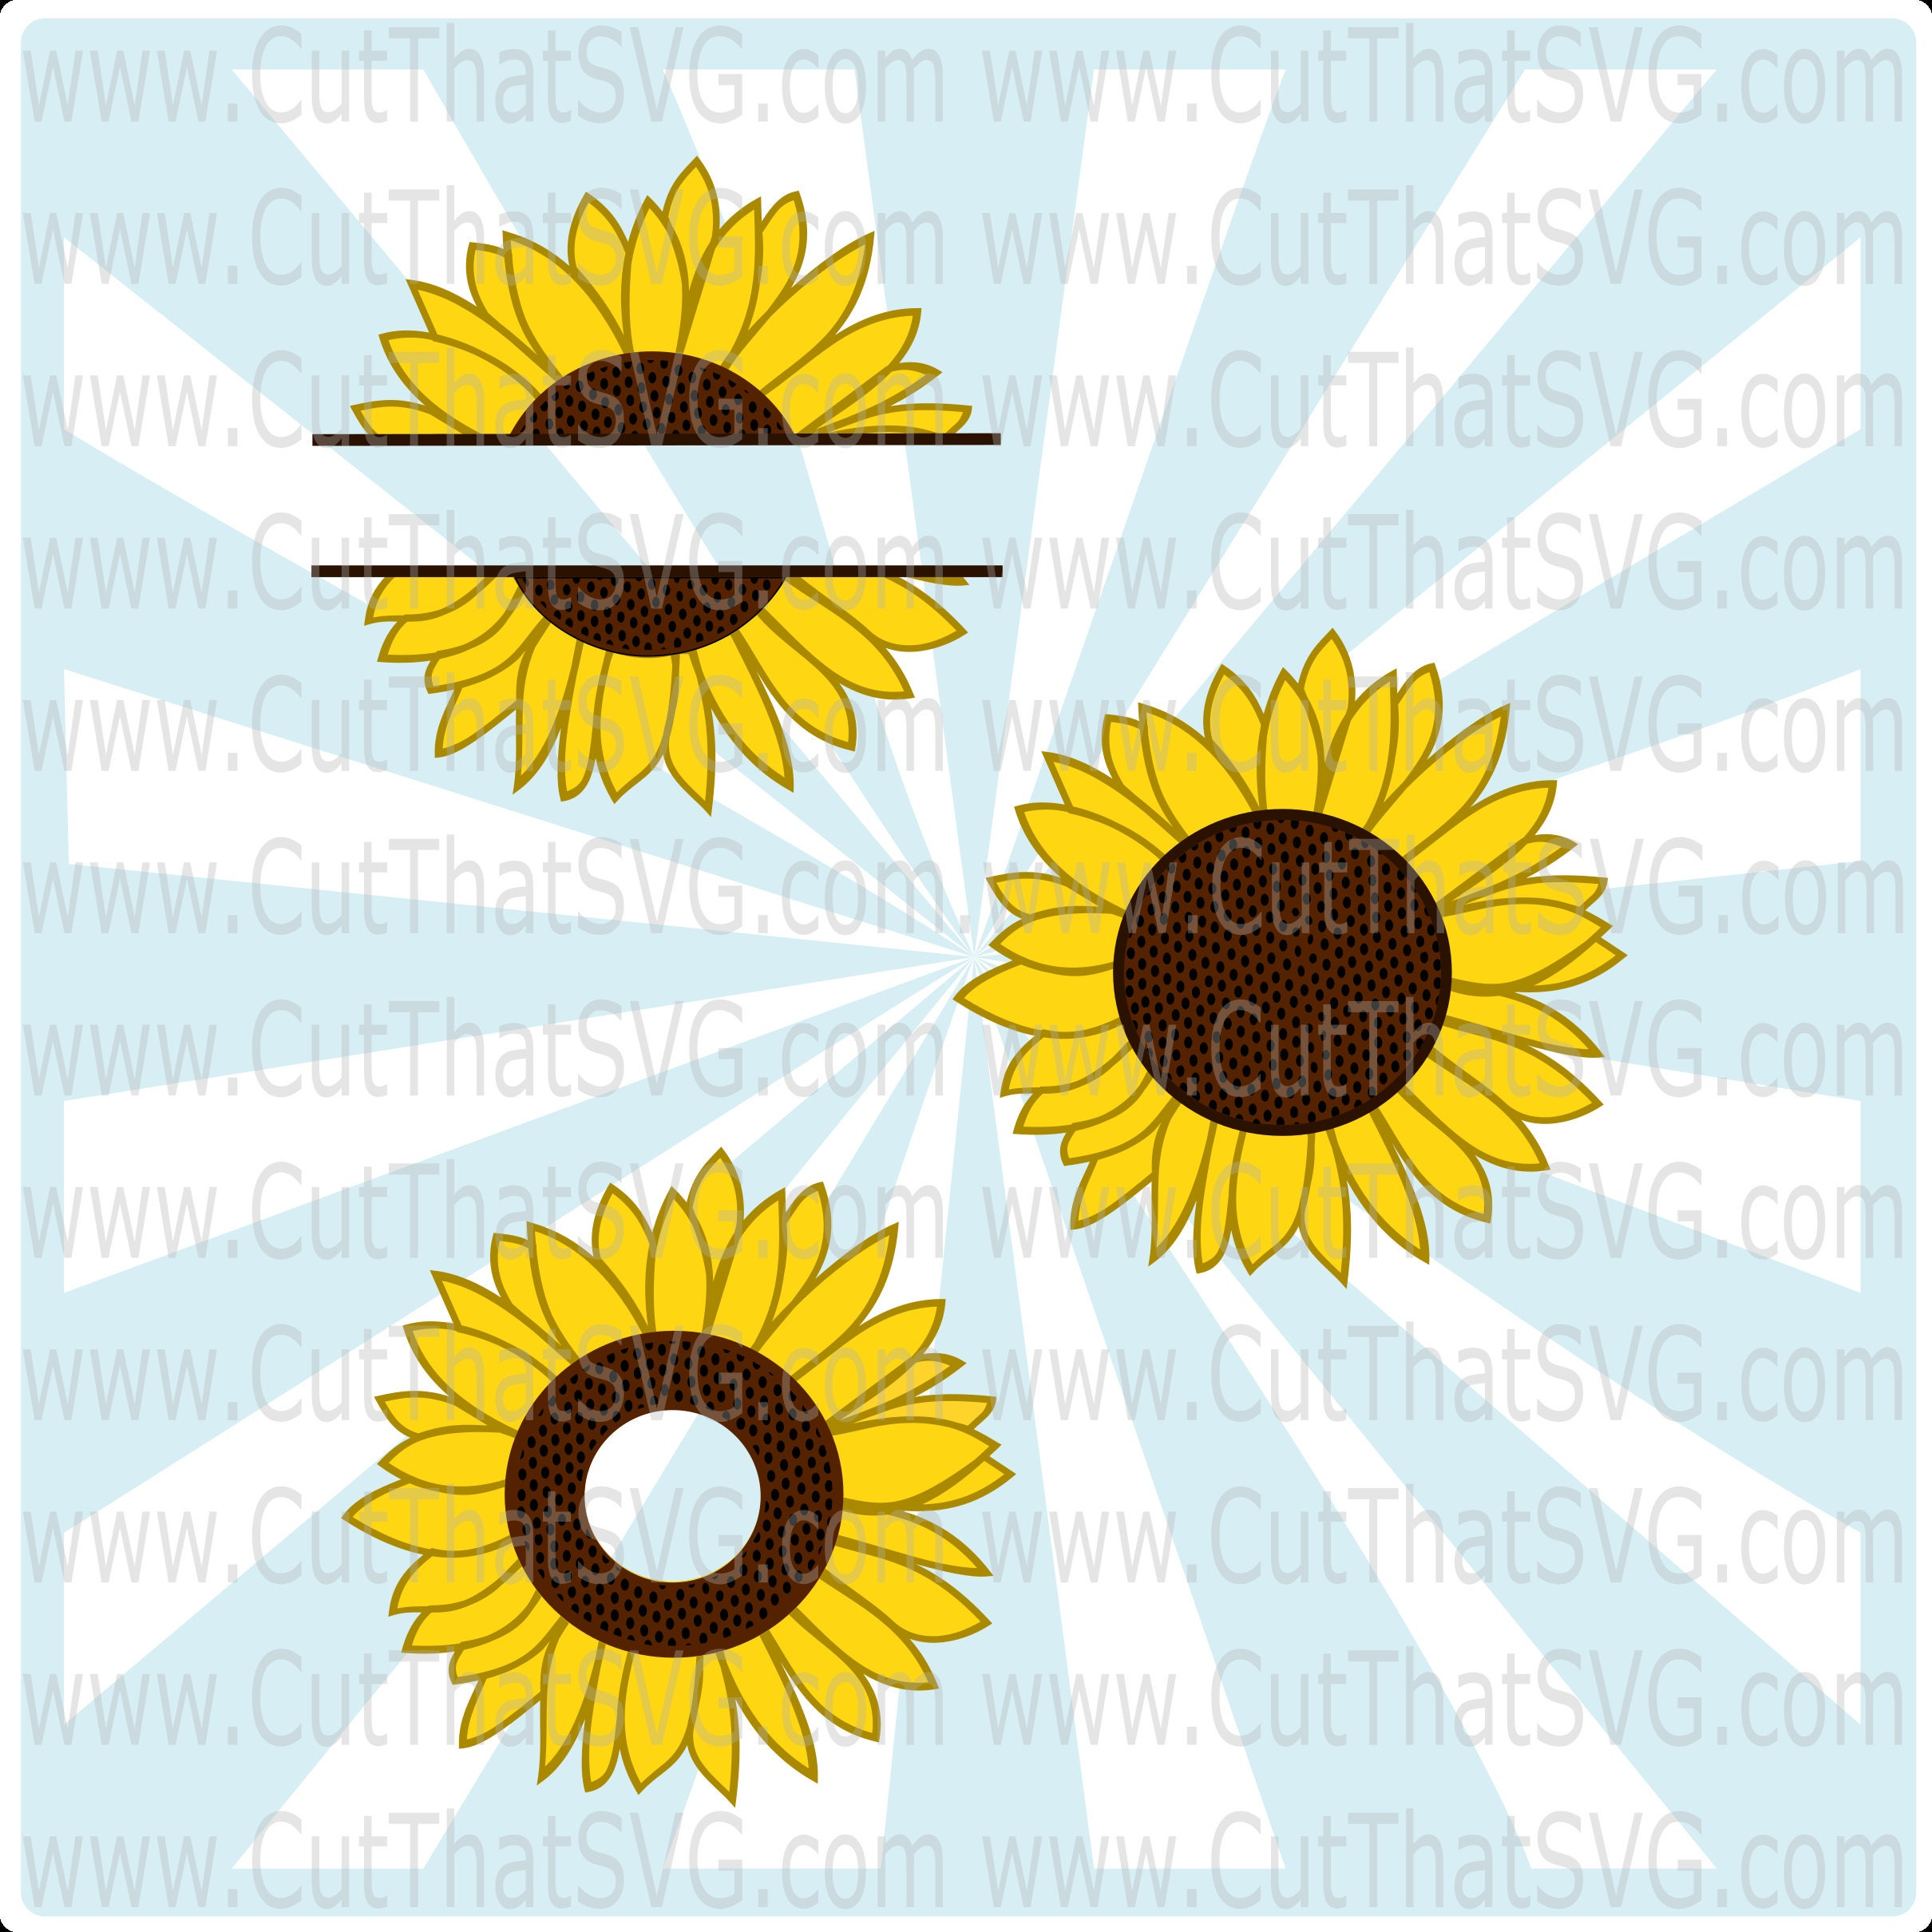 Download Sunflower SVG Cut File from CutThatSVG on Etsy Studio